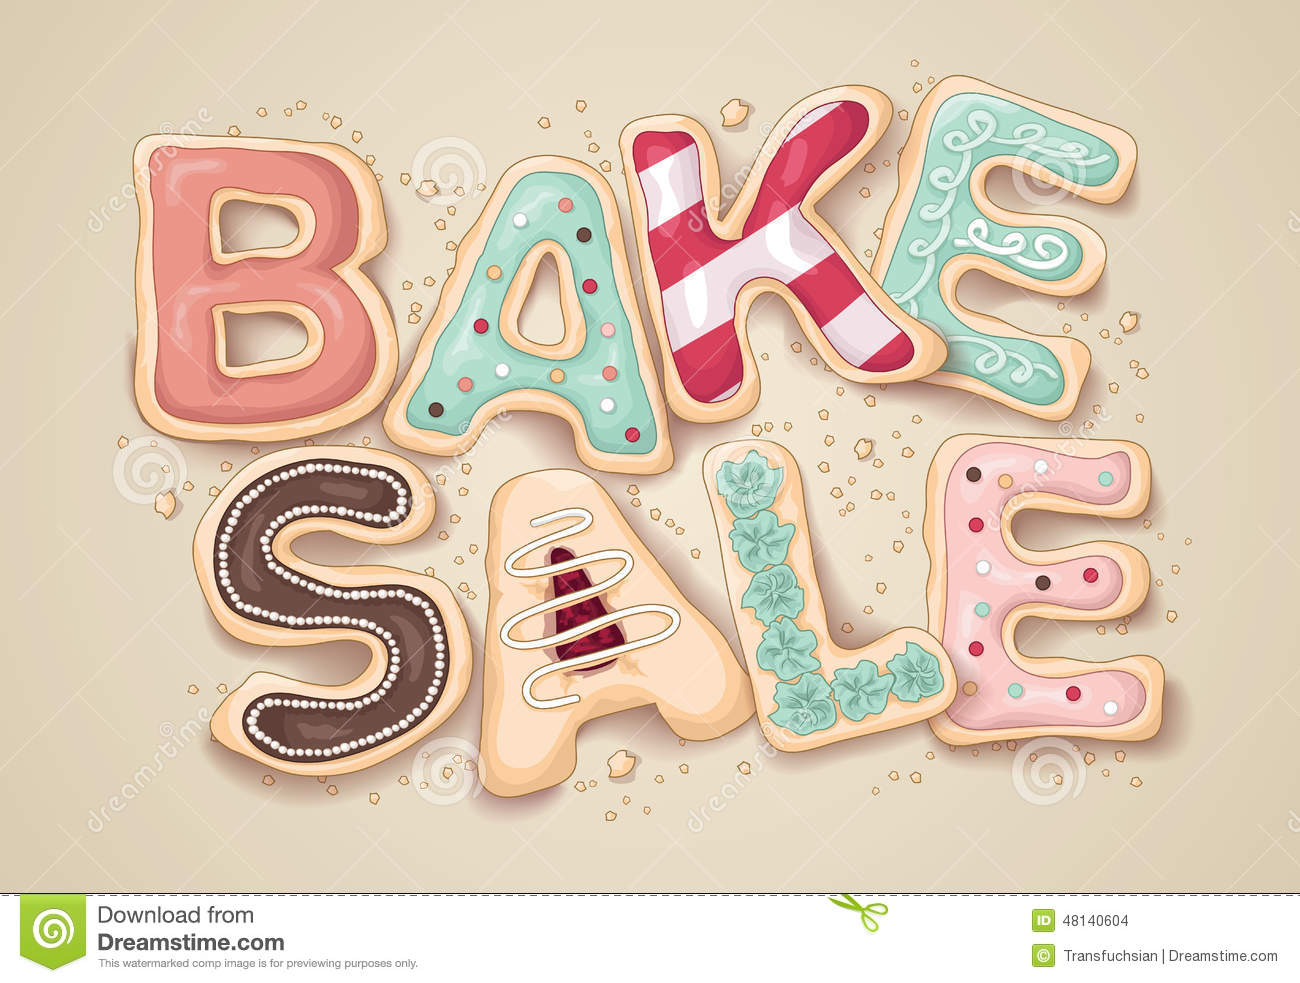 bake sign clipart clipart kid hand drawn type that says bake in the shape of delicious and